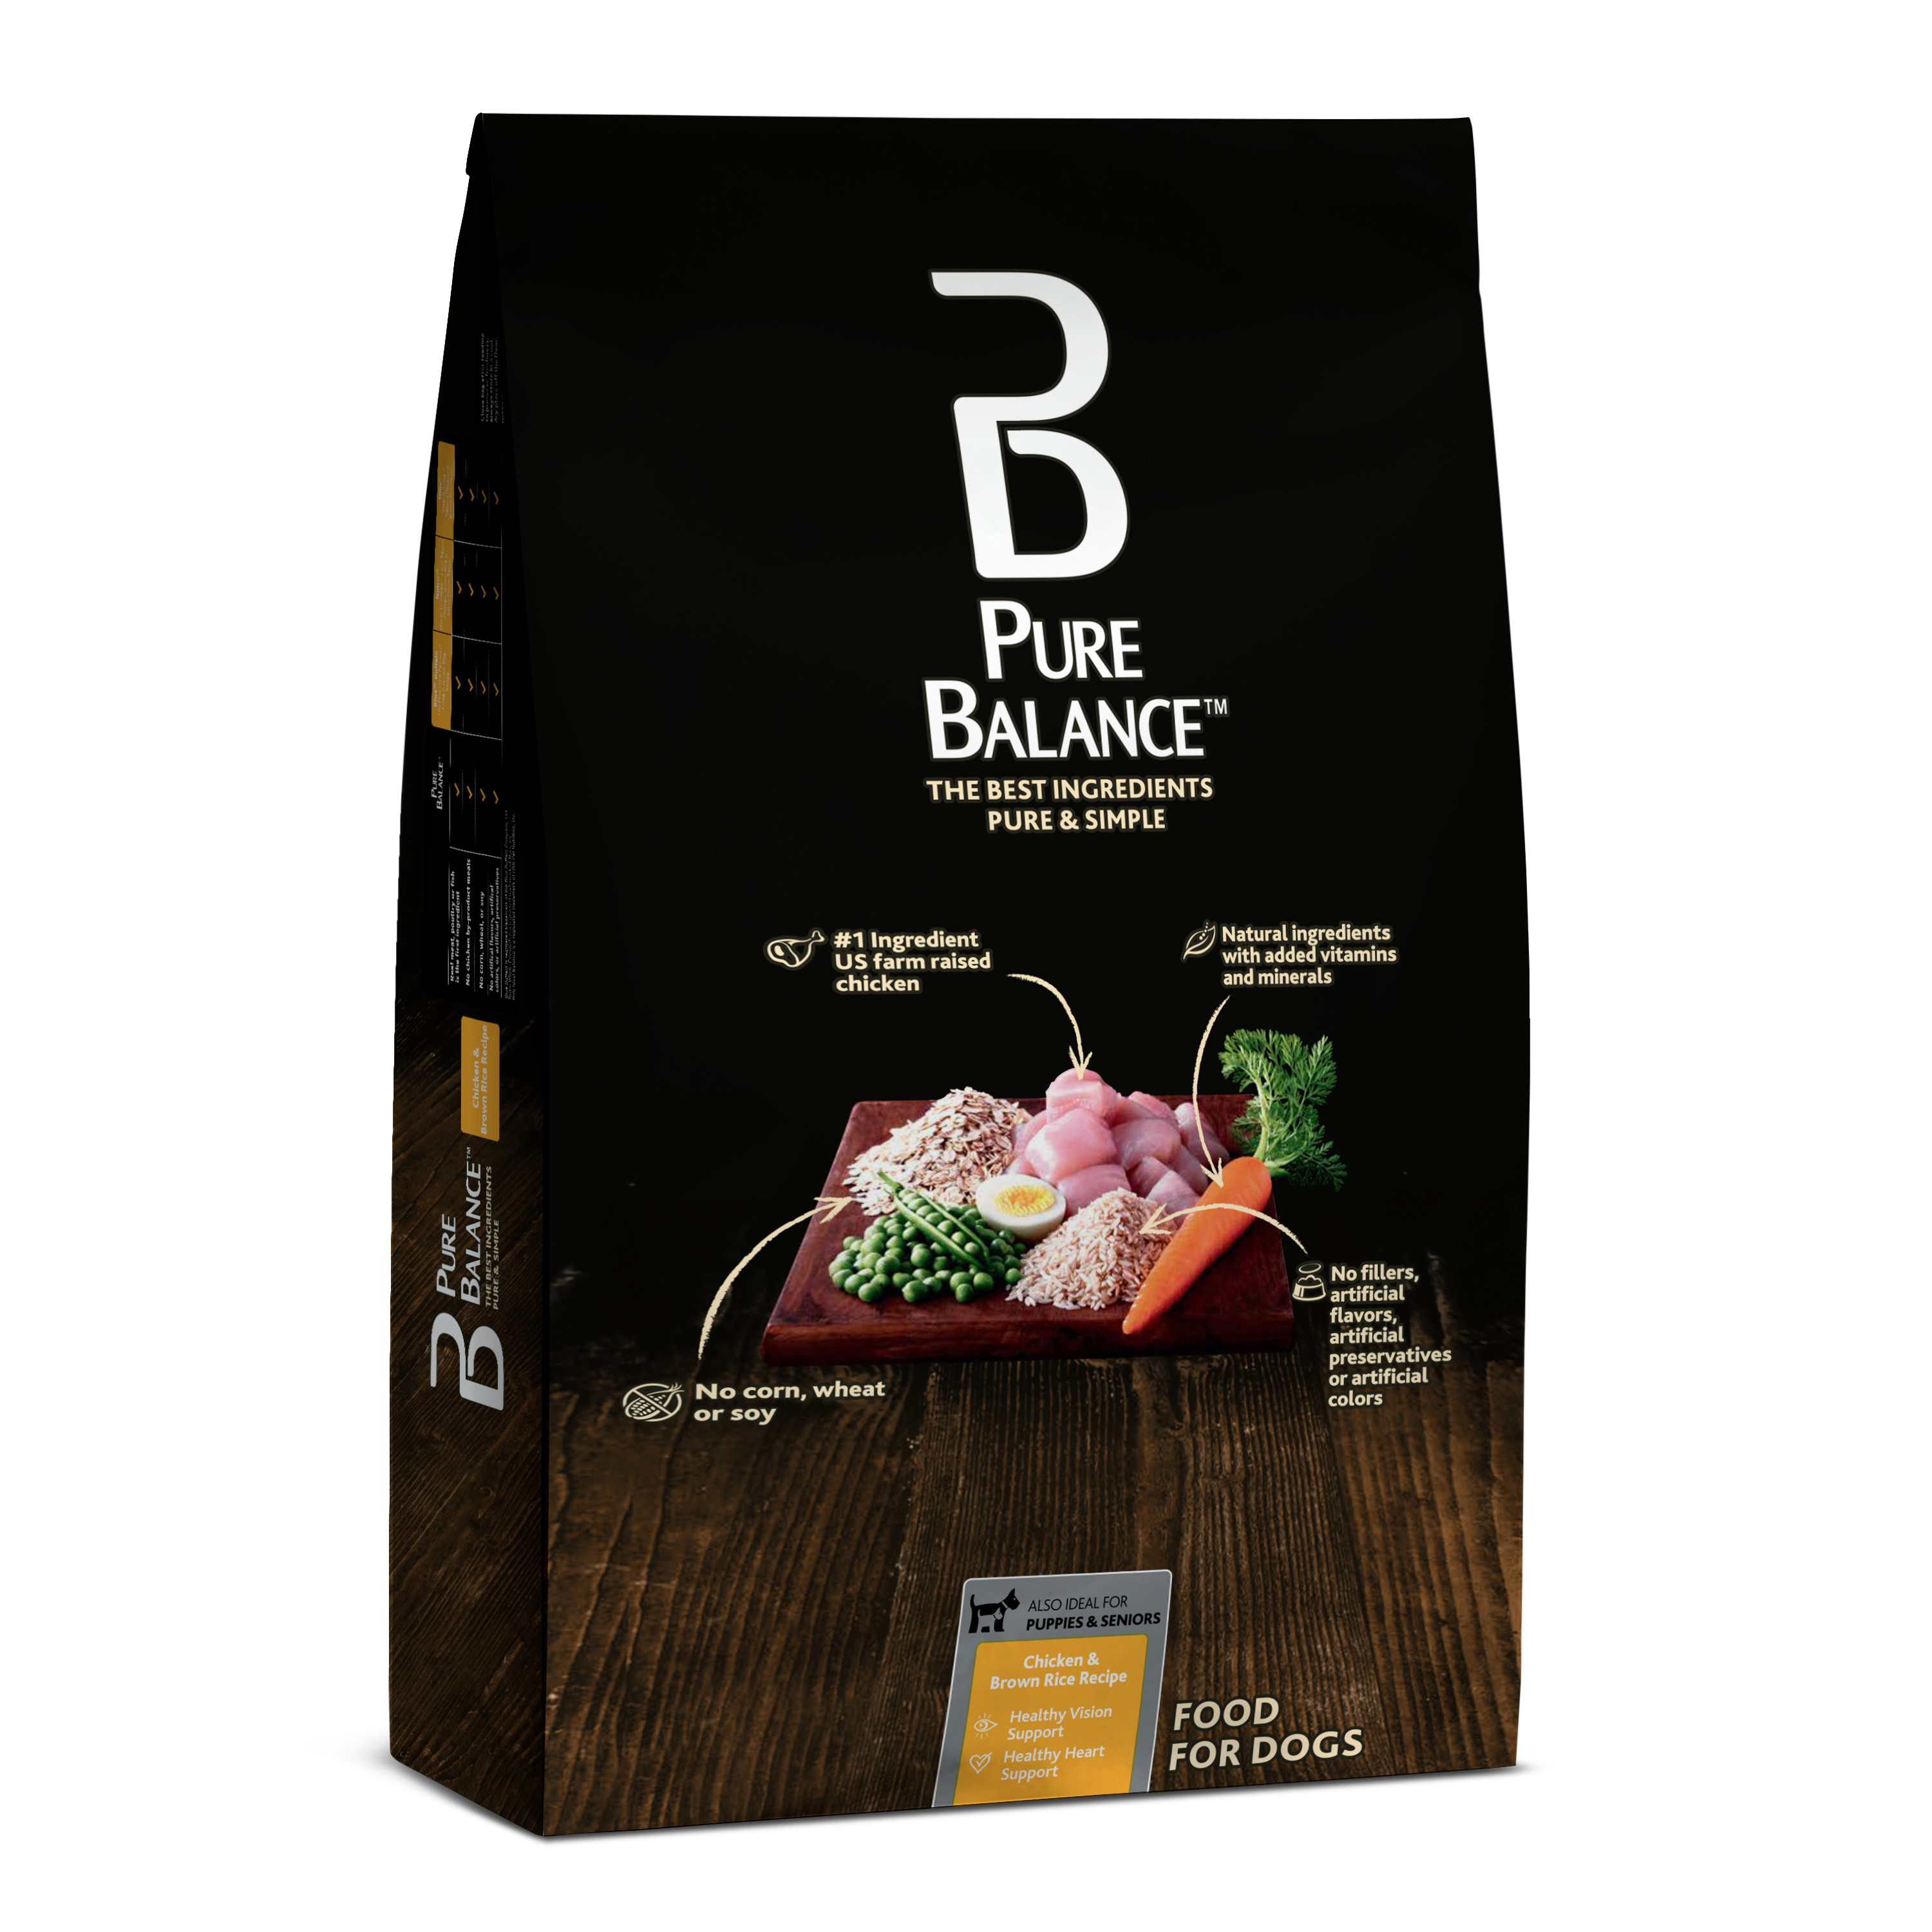 Pure Balance Chicken & Brown Rice Recipe Food for Dogs 30lbs